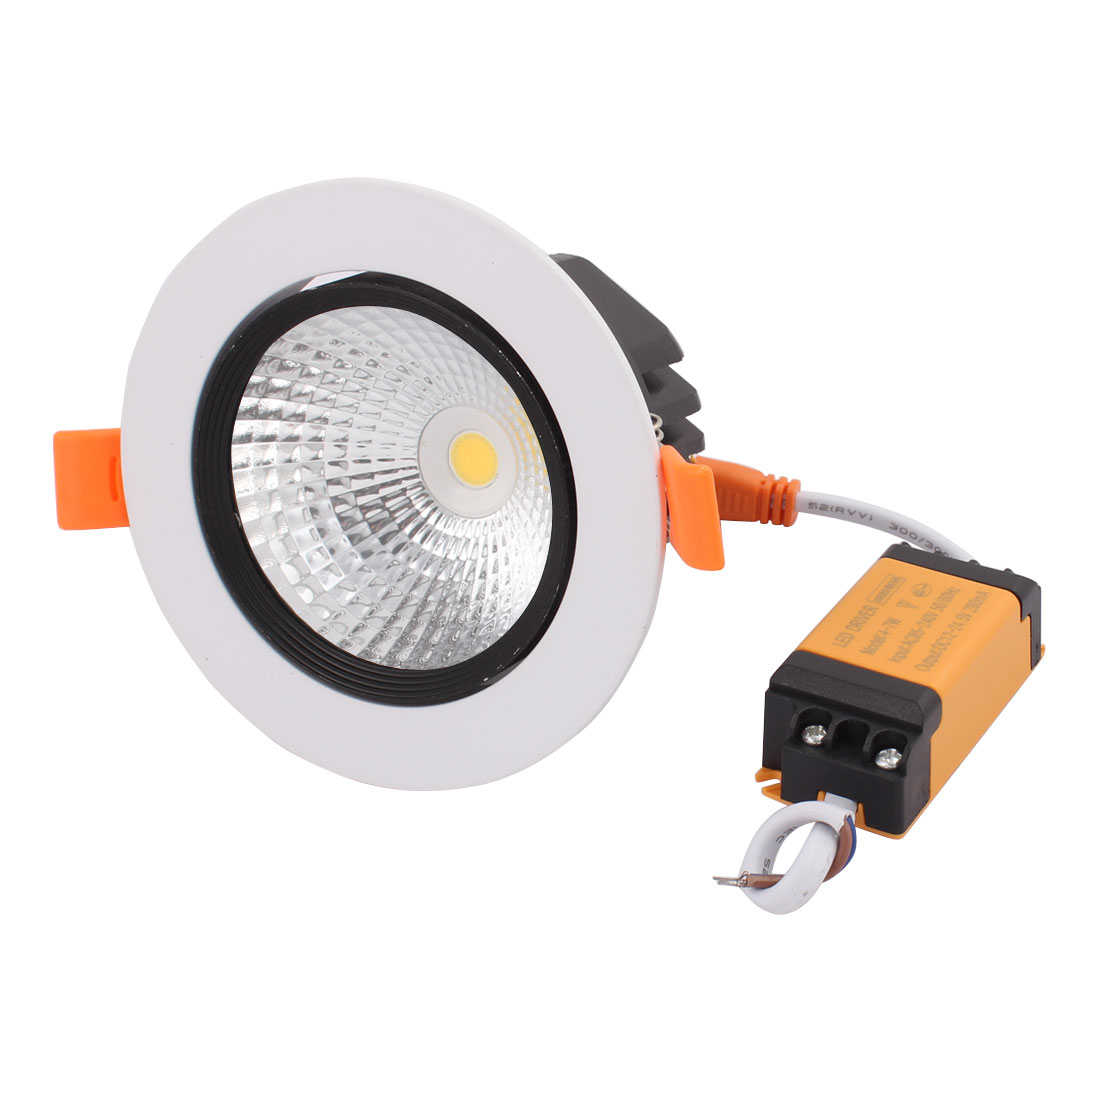 AC85-265V 7W 4000K 24 Degree White Black  COB Ceiling Lamp with  Driver - image 3 of 3